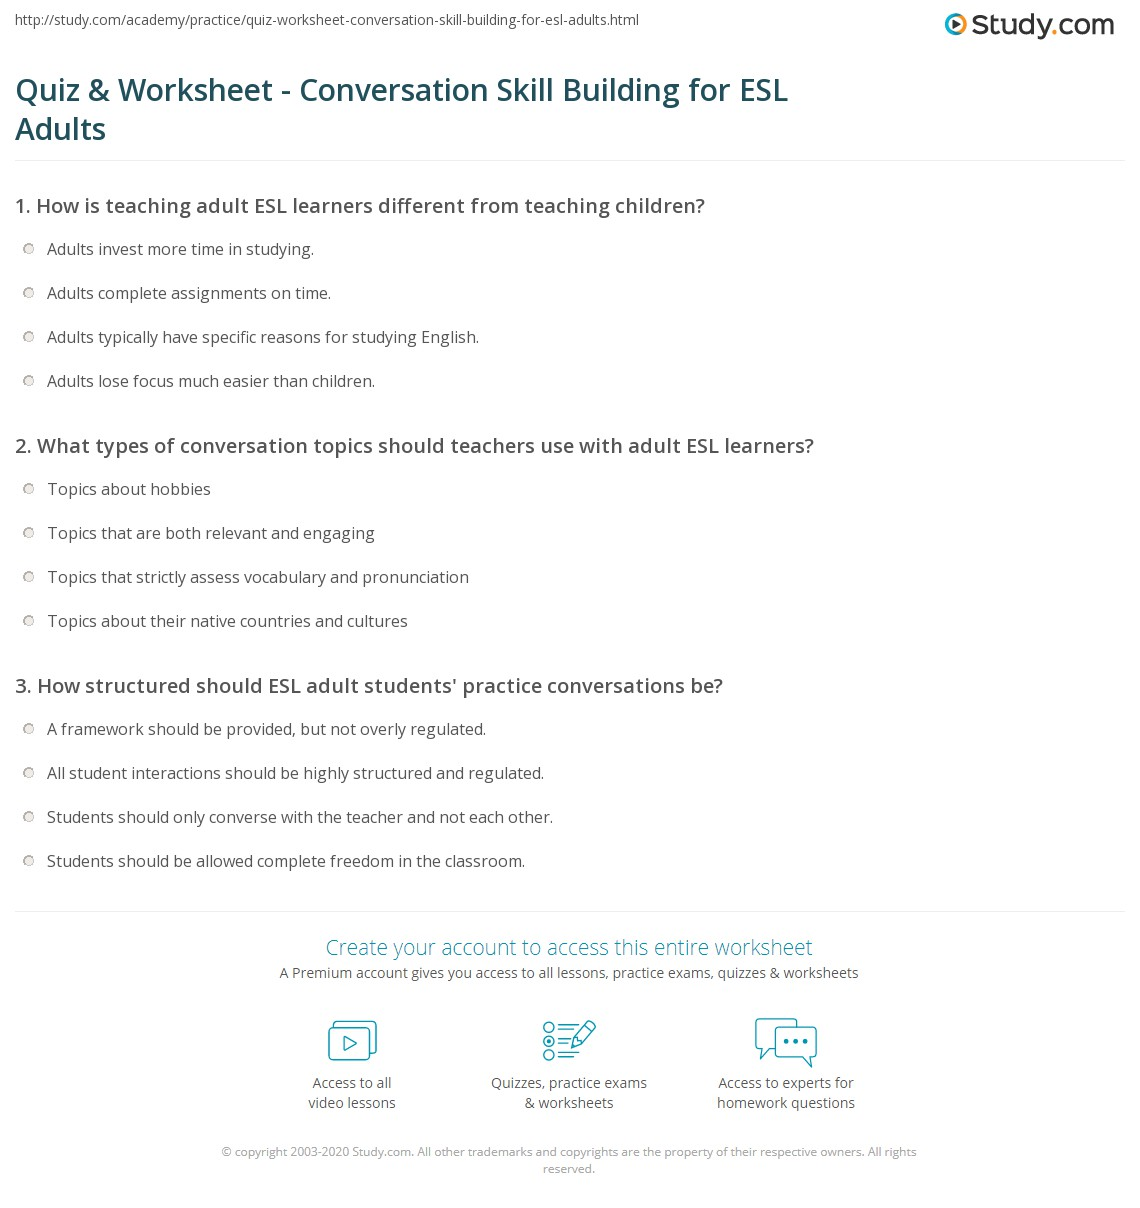 Worksheets Adult Esl Worksheets quiz worksheet conversation skill building for esl adults print teaching skills to worksheet